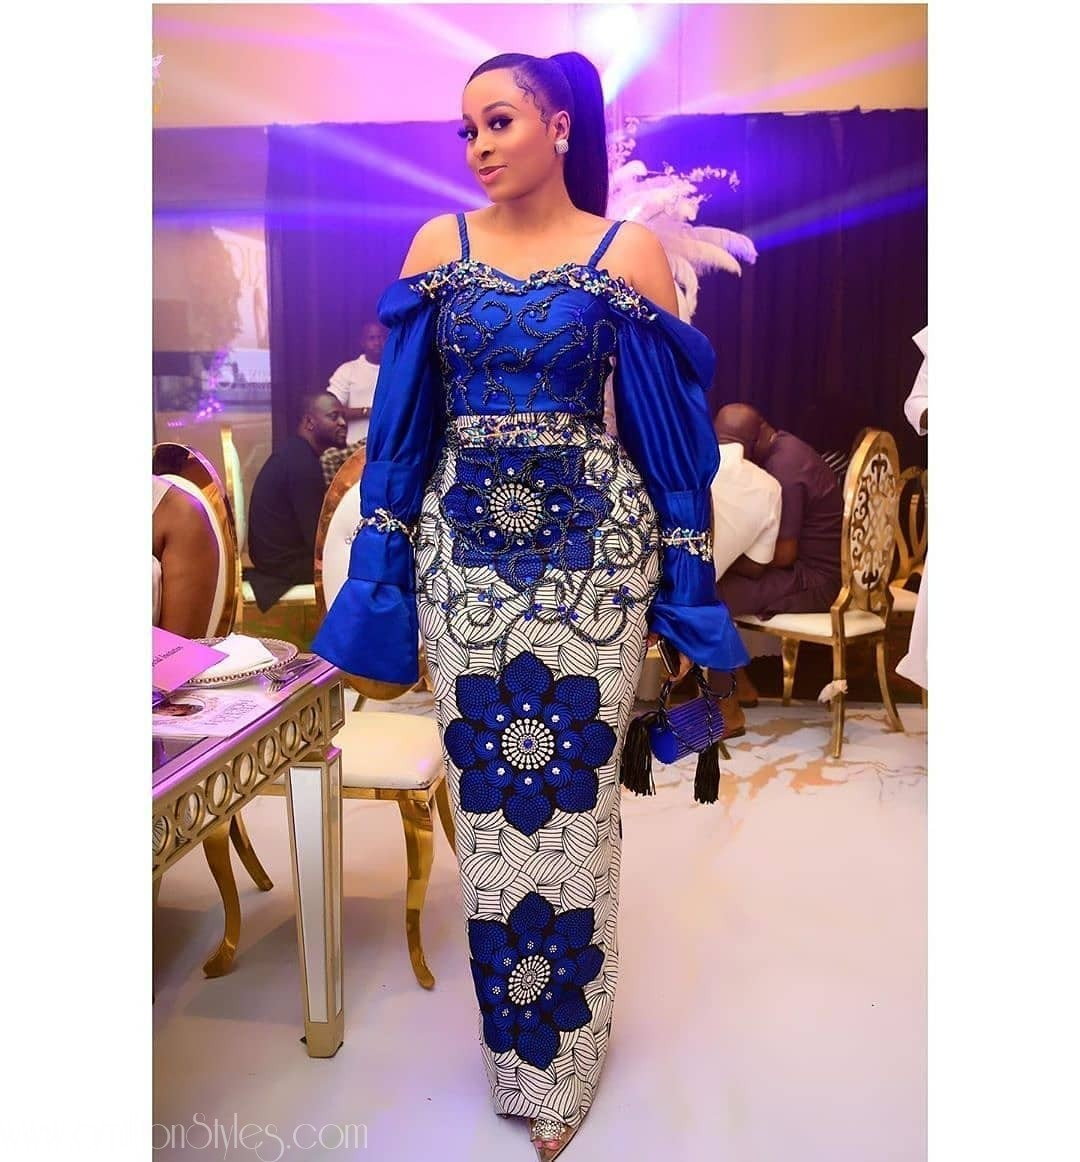 15 Latest Ankara Styles That Will Turn Your Heads